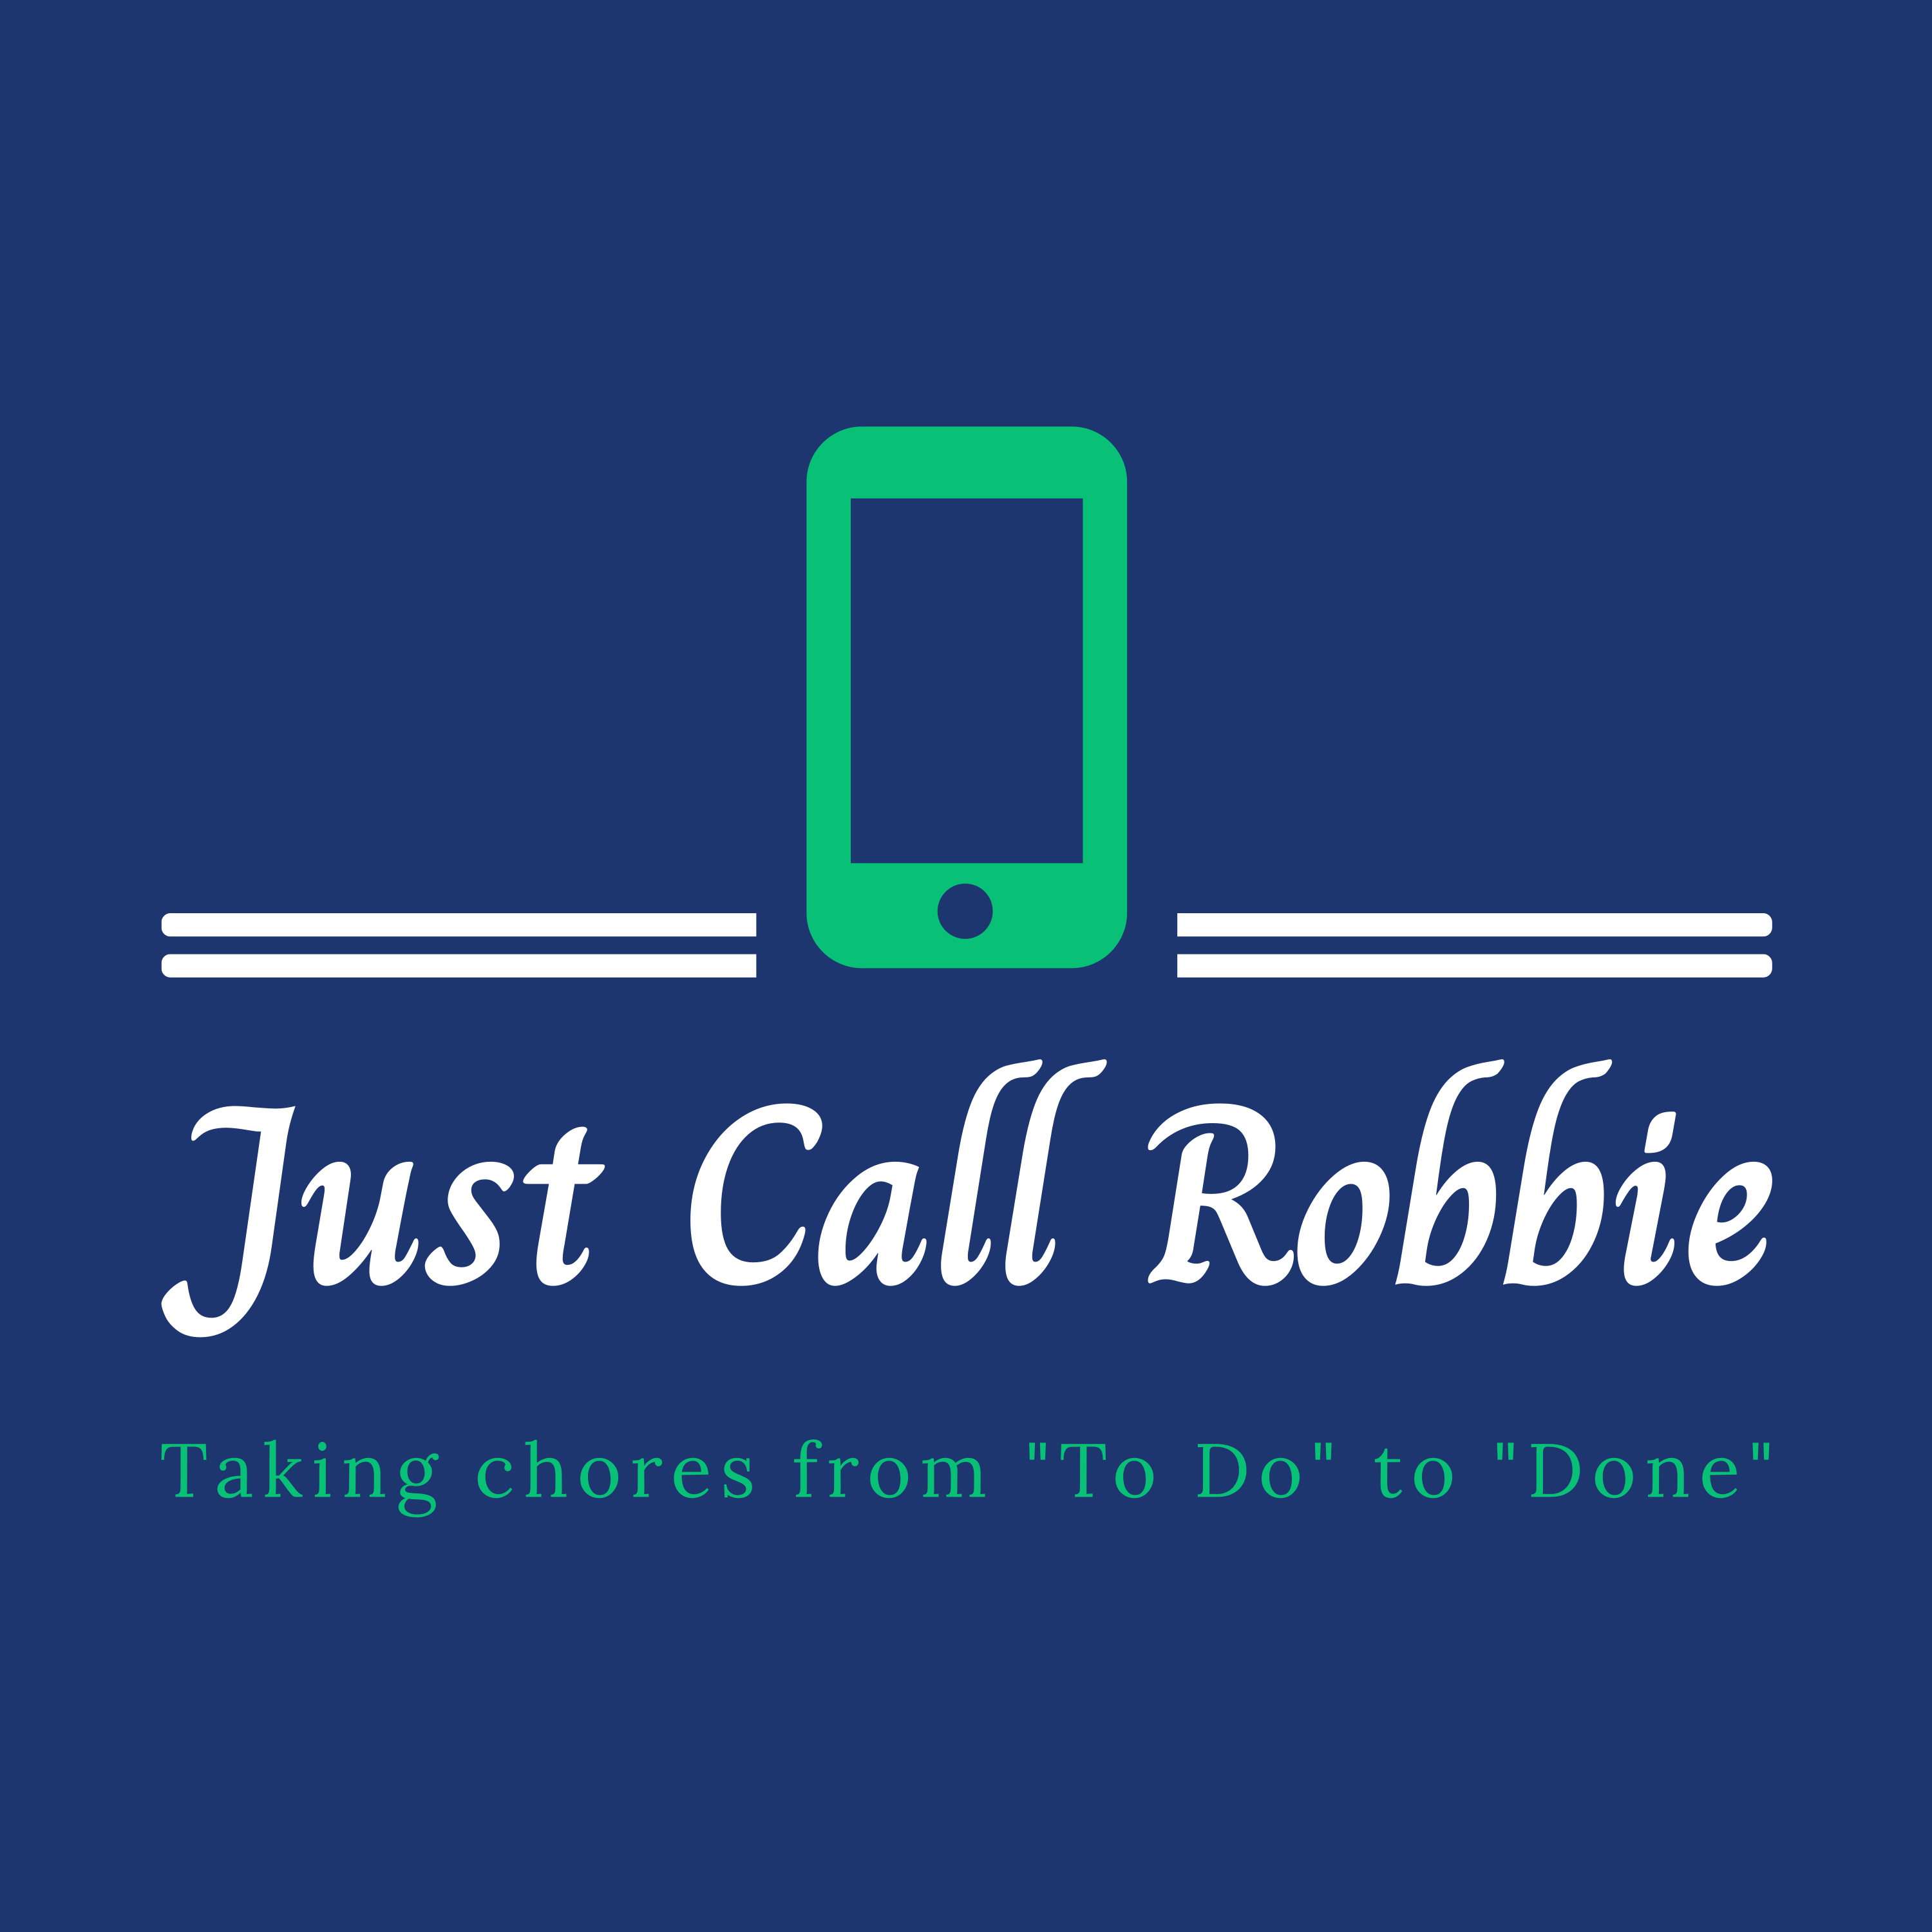 Just Call Robbie